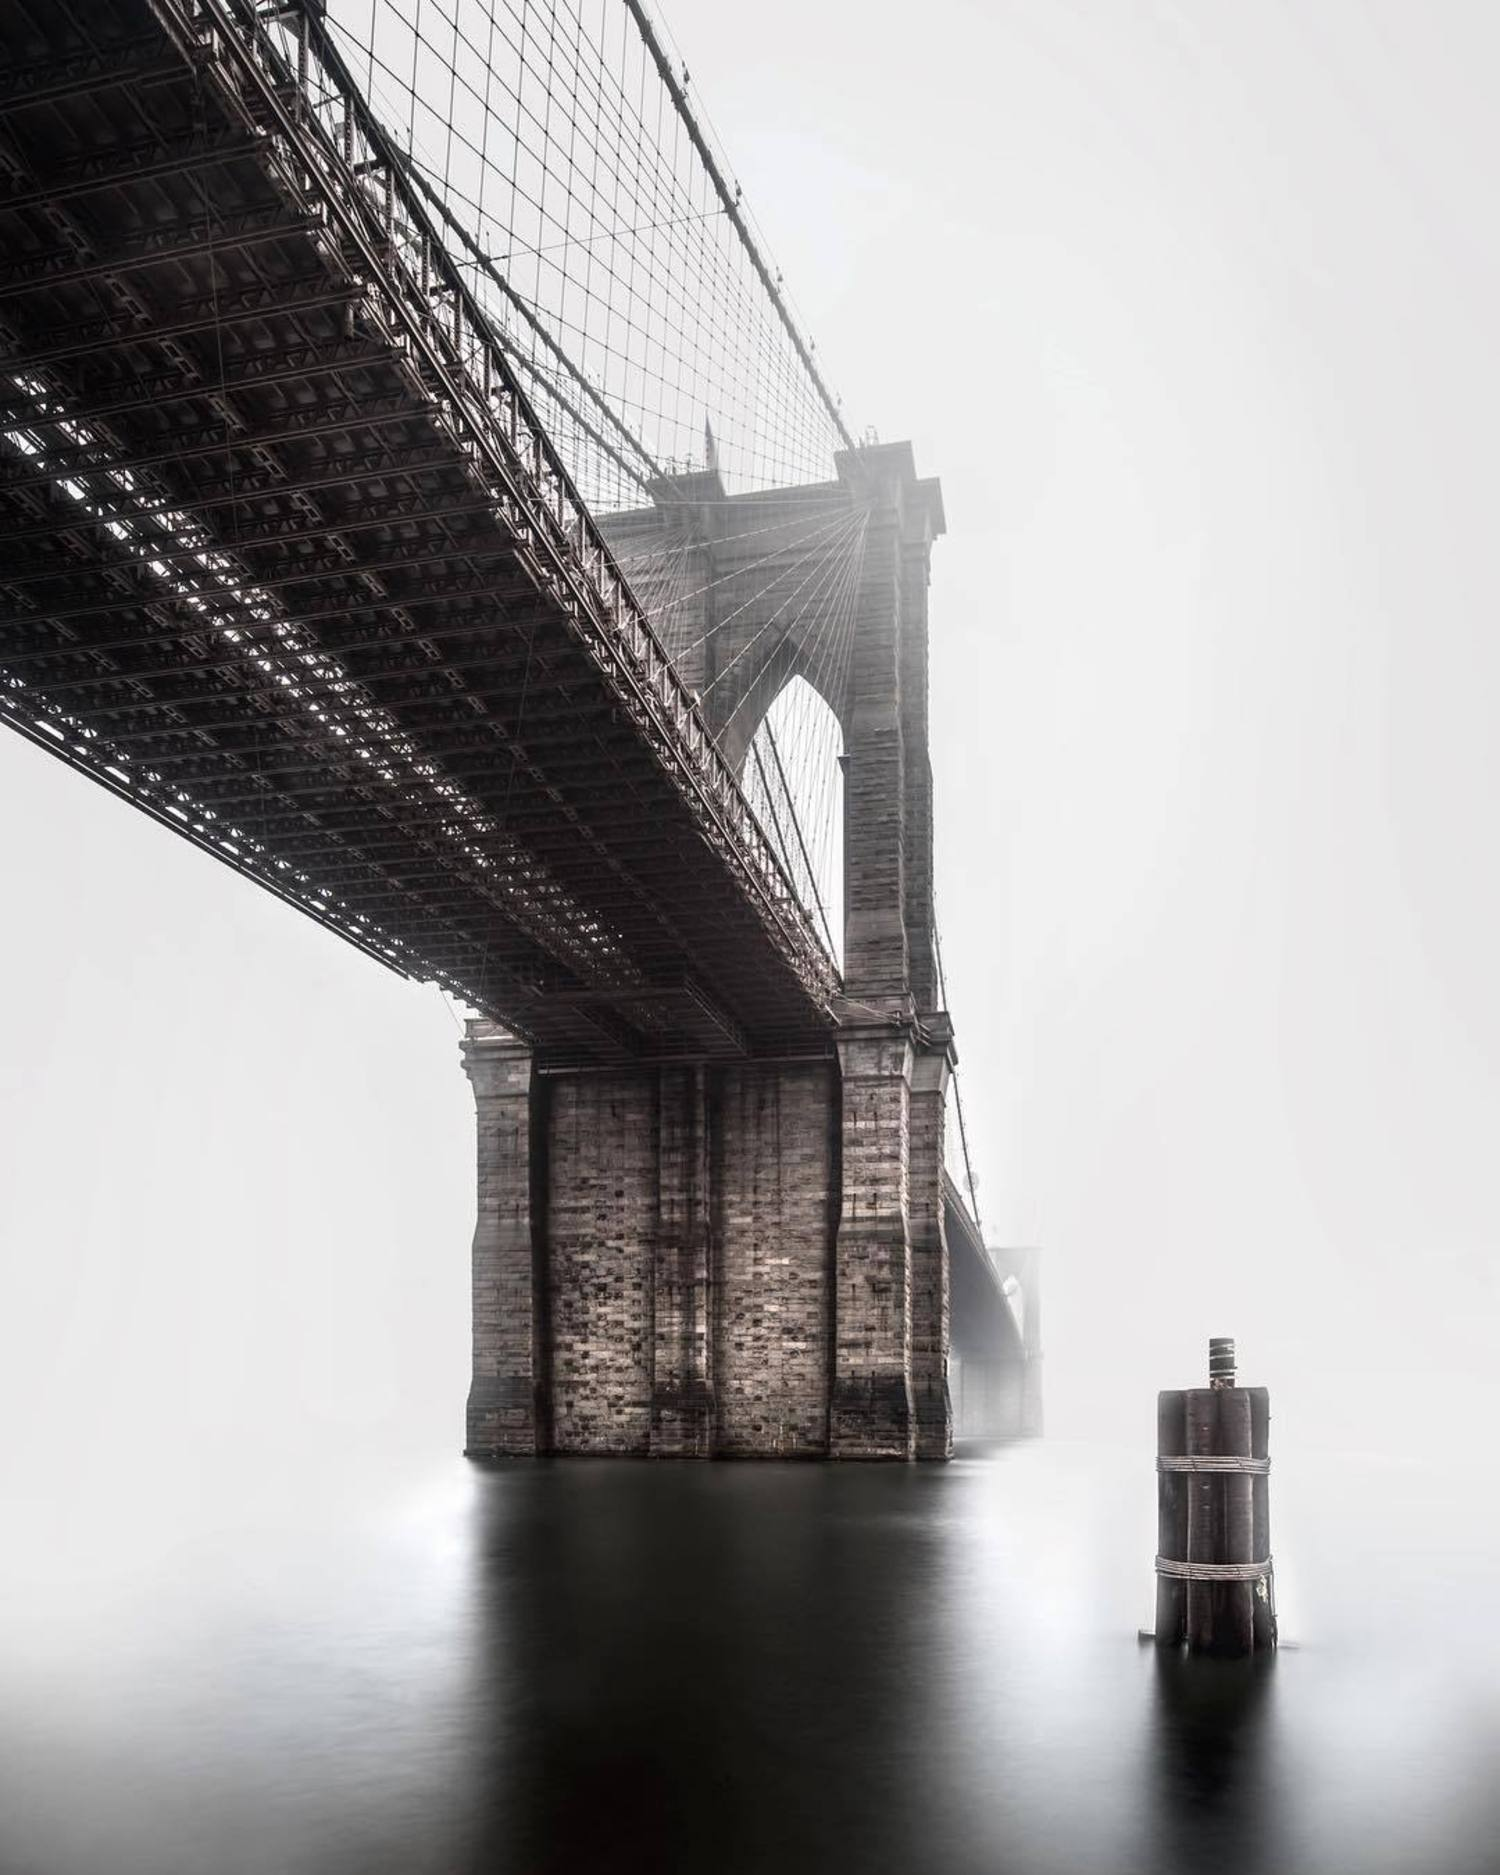 Brooklyn Bridge, New York. Photo via @rwakeland #viewingnyc #newyork #newyorkcity #nyc #brooklynbridge #fog